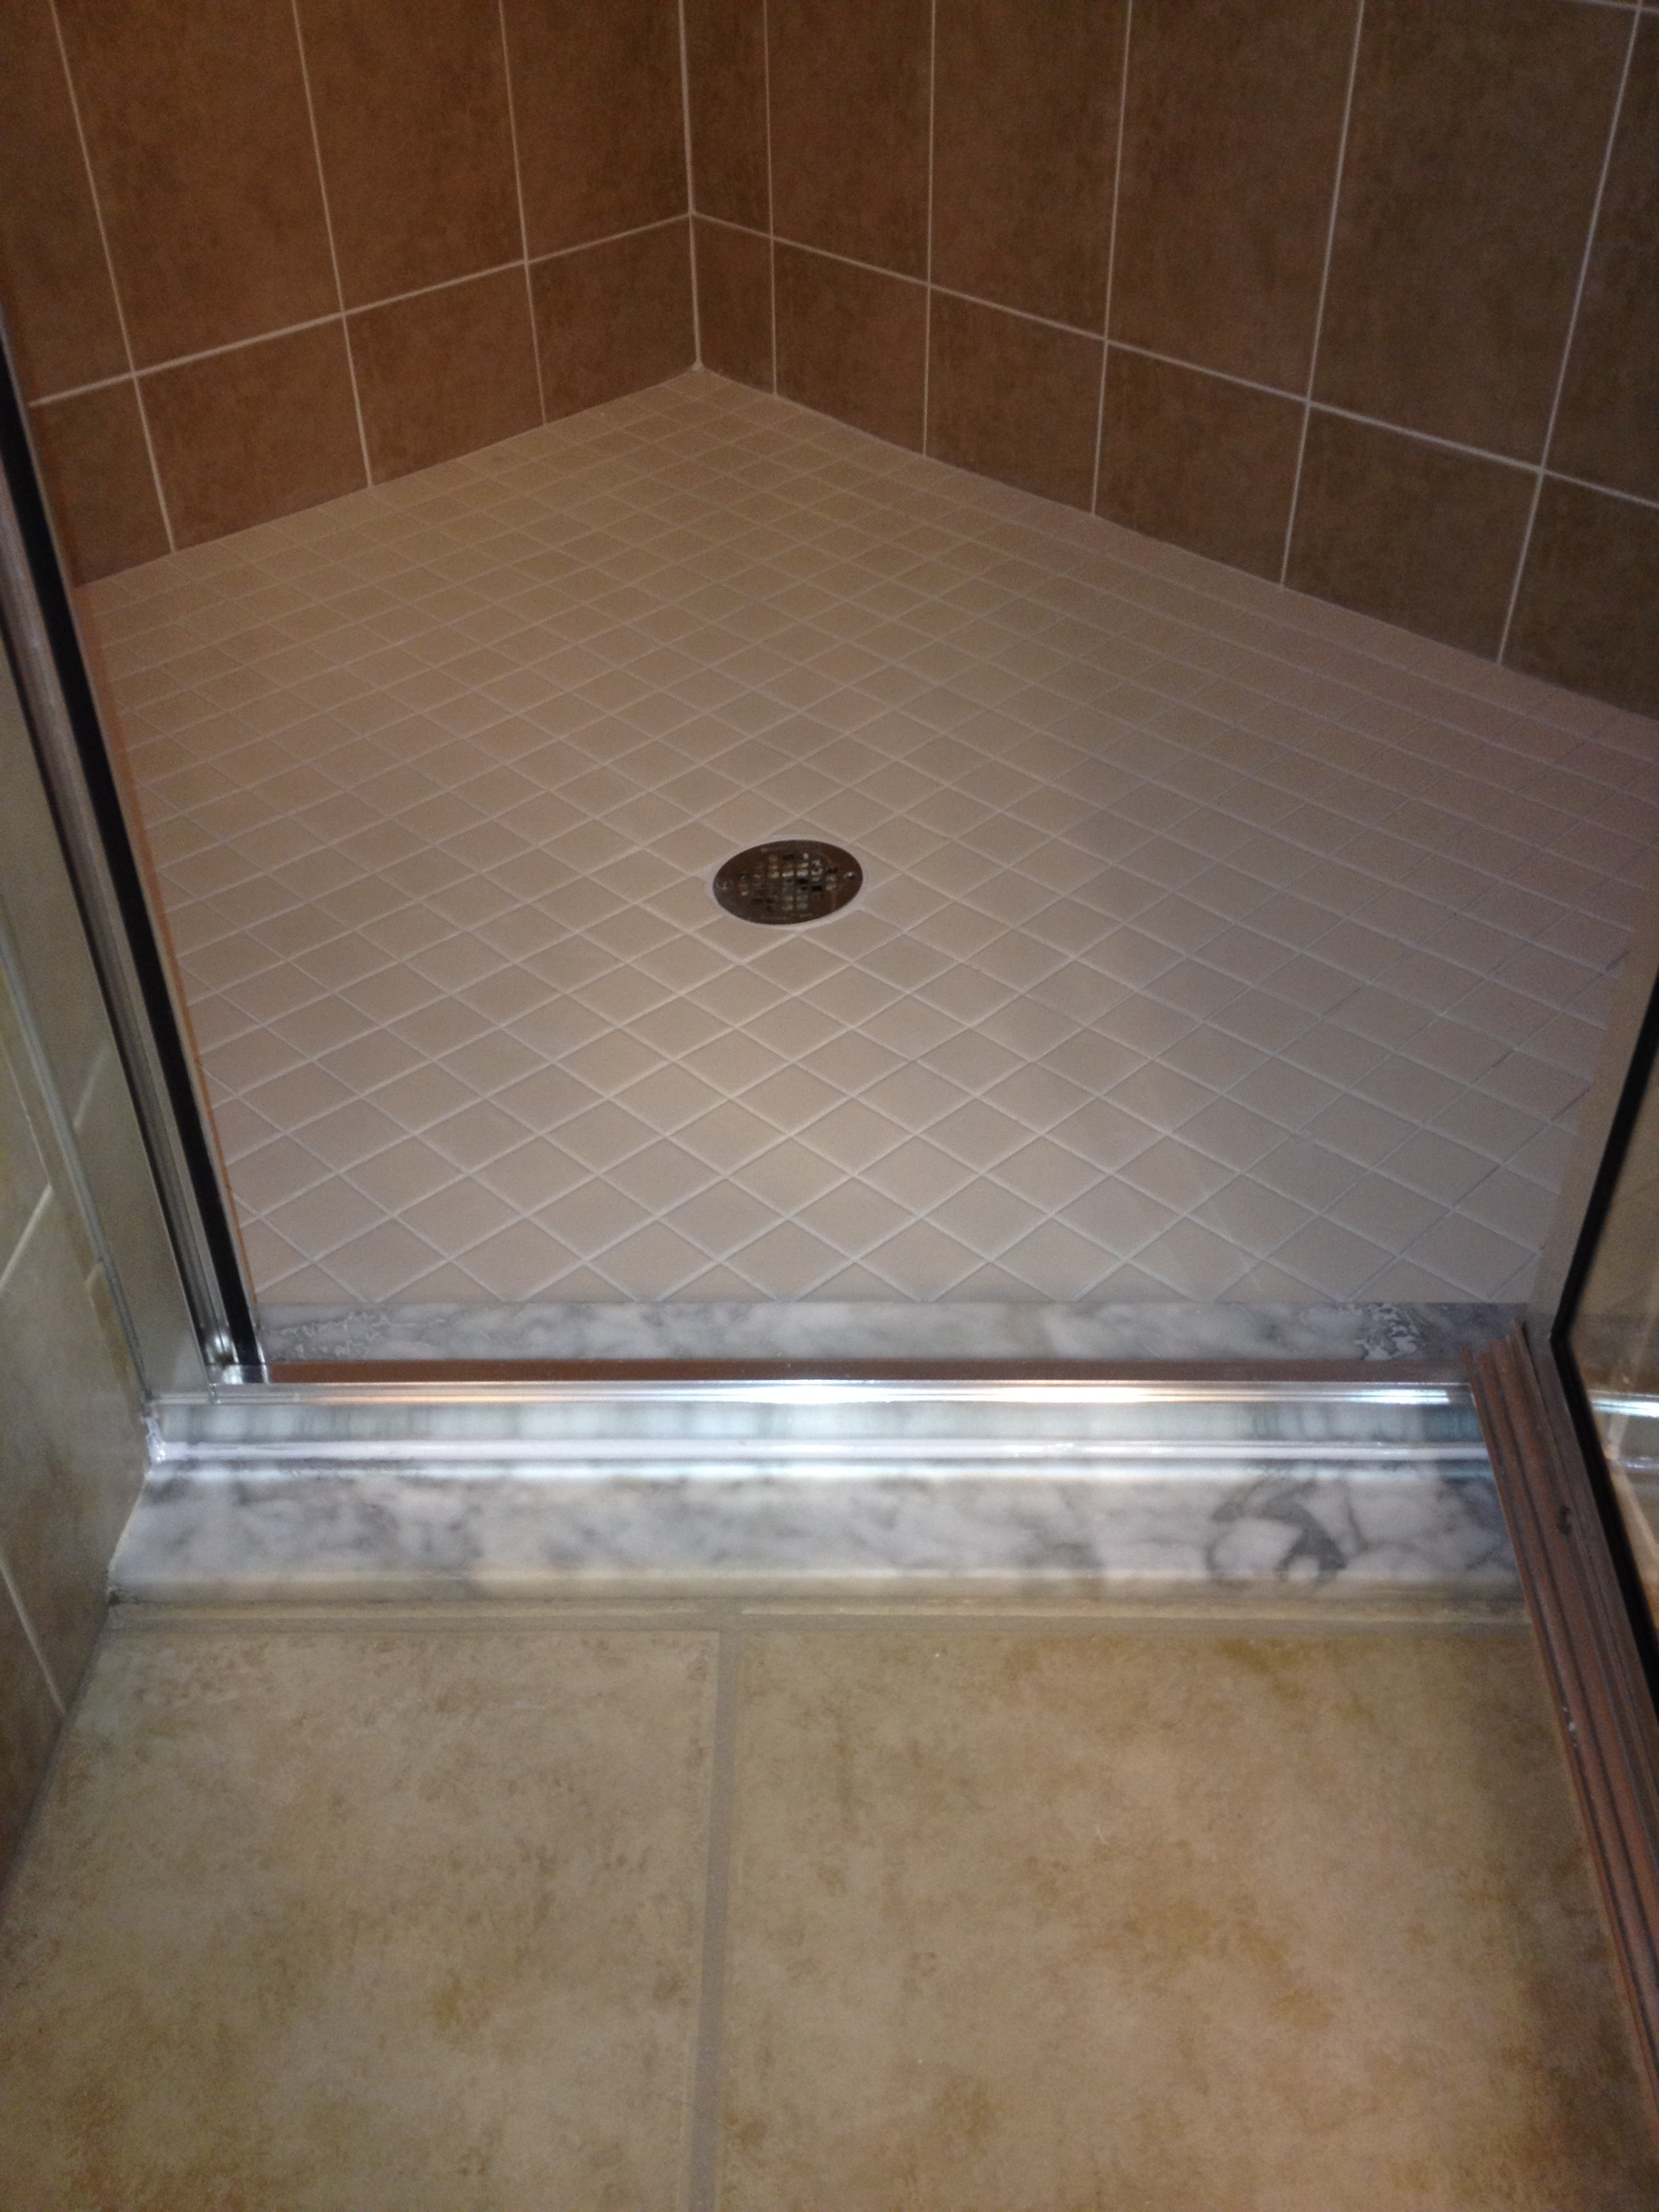 Our Team Loves Cleaning Tile and Grout